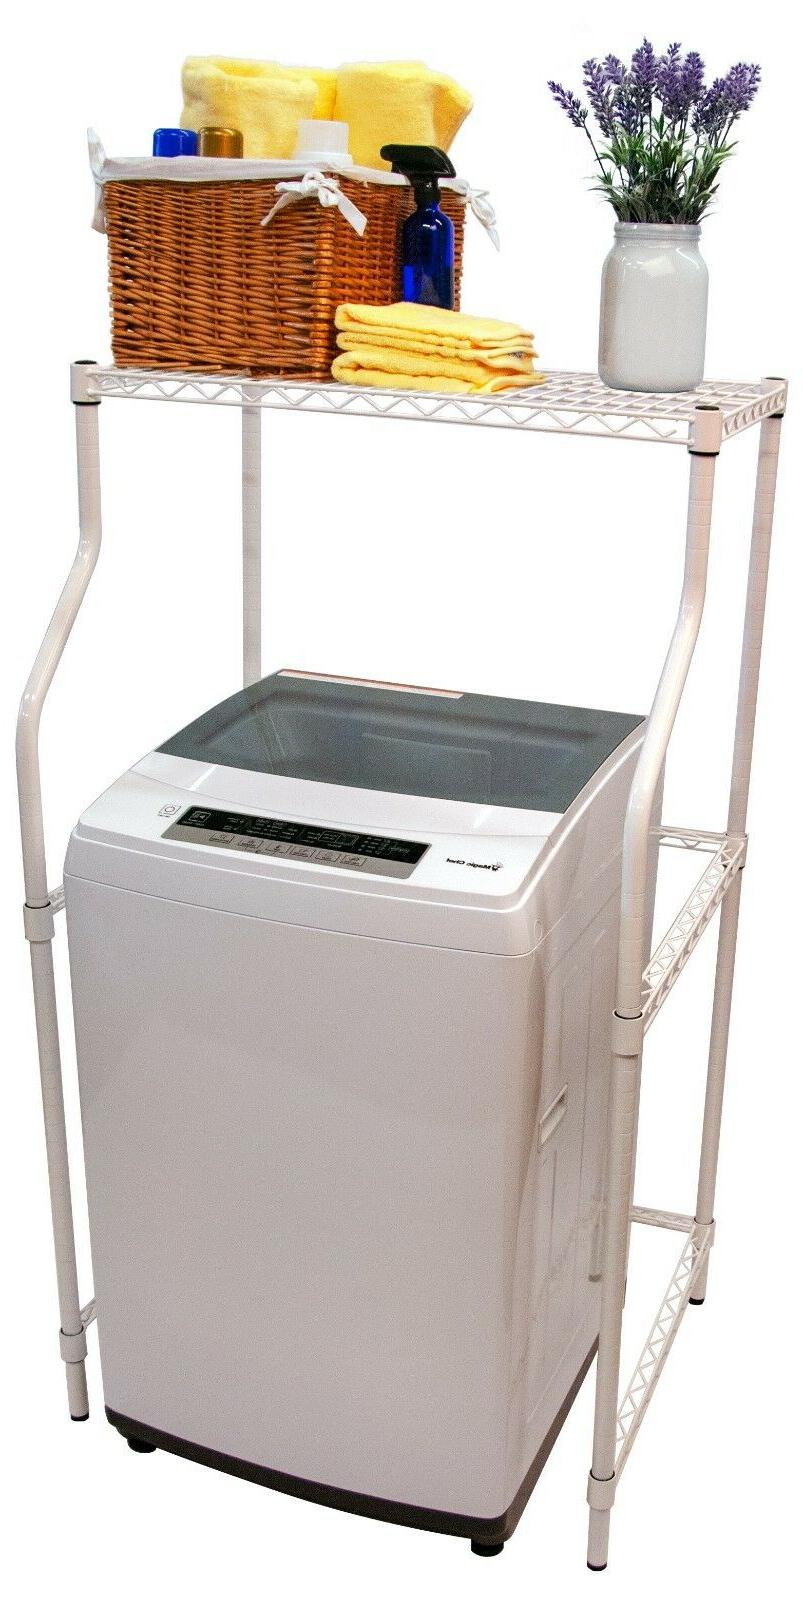 Compact Laundry Stand Portable Storage Dryer Washer Adjustab